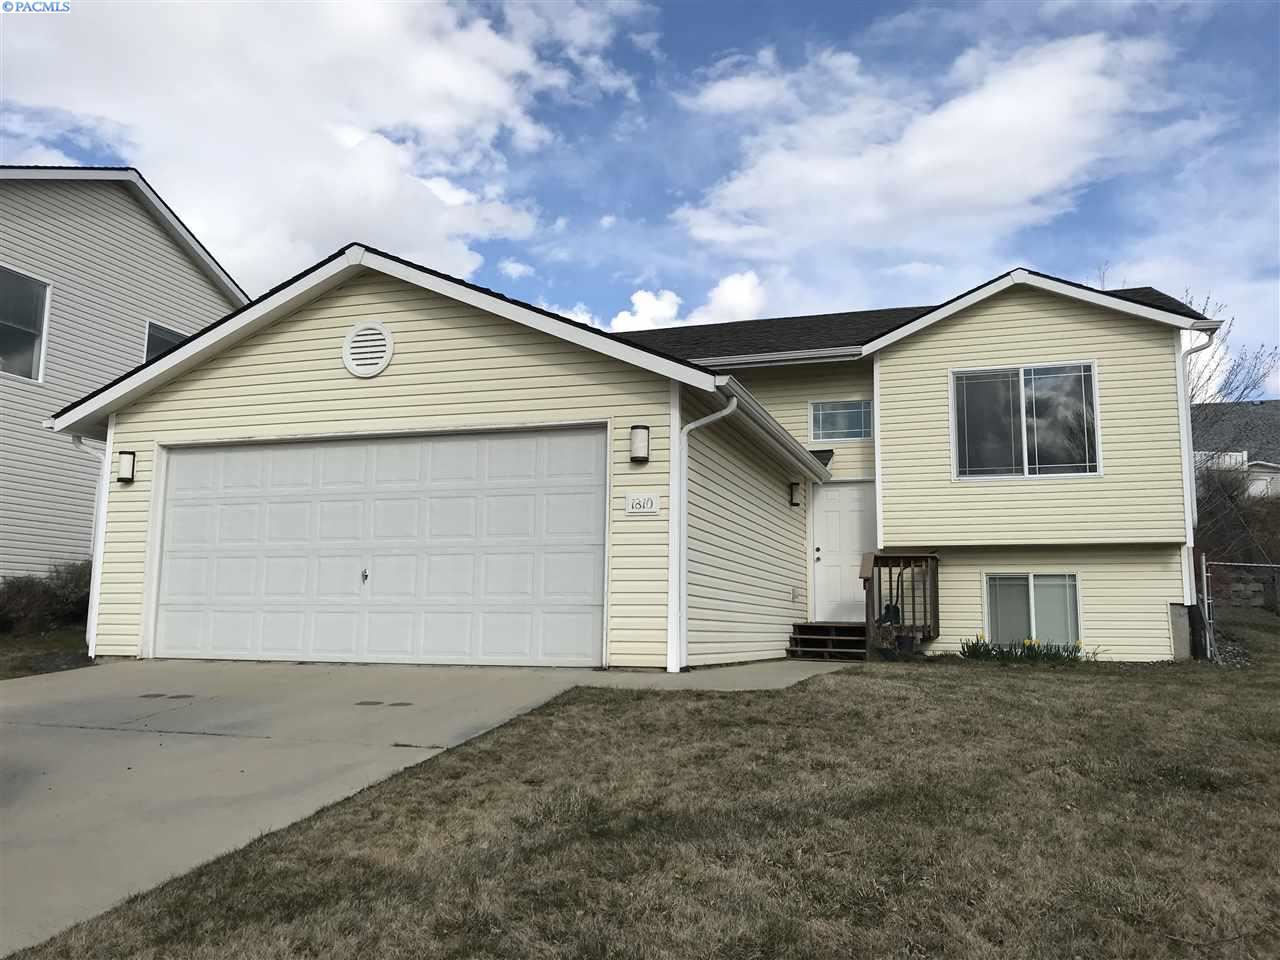 Photo of 1810 NW Ventura, Pullman, WA 99163 (MLS # 244648)